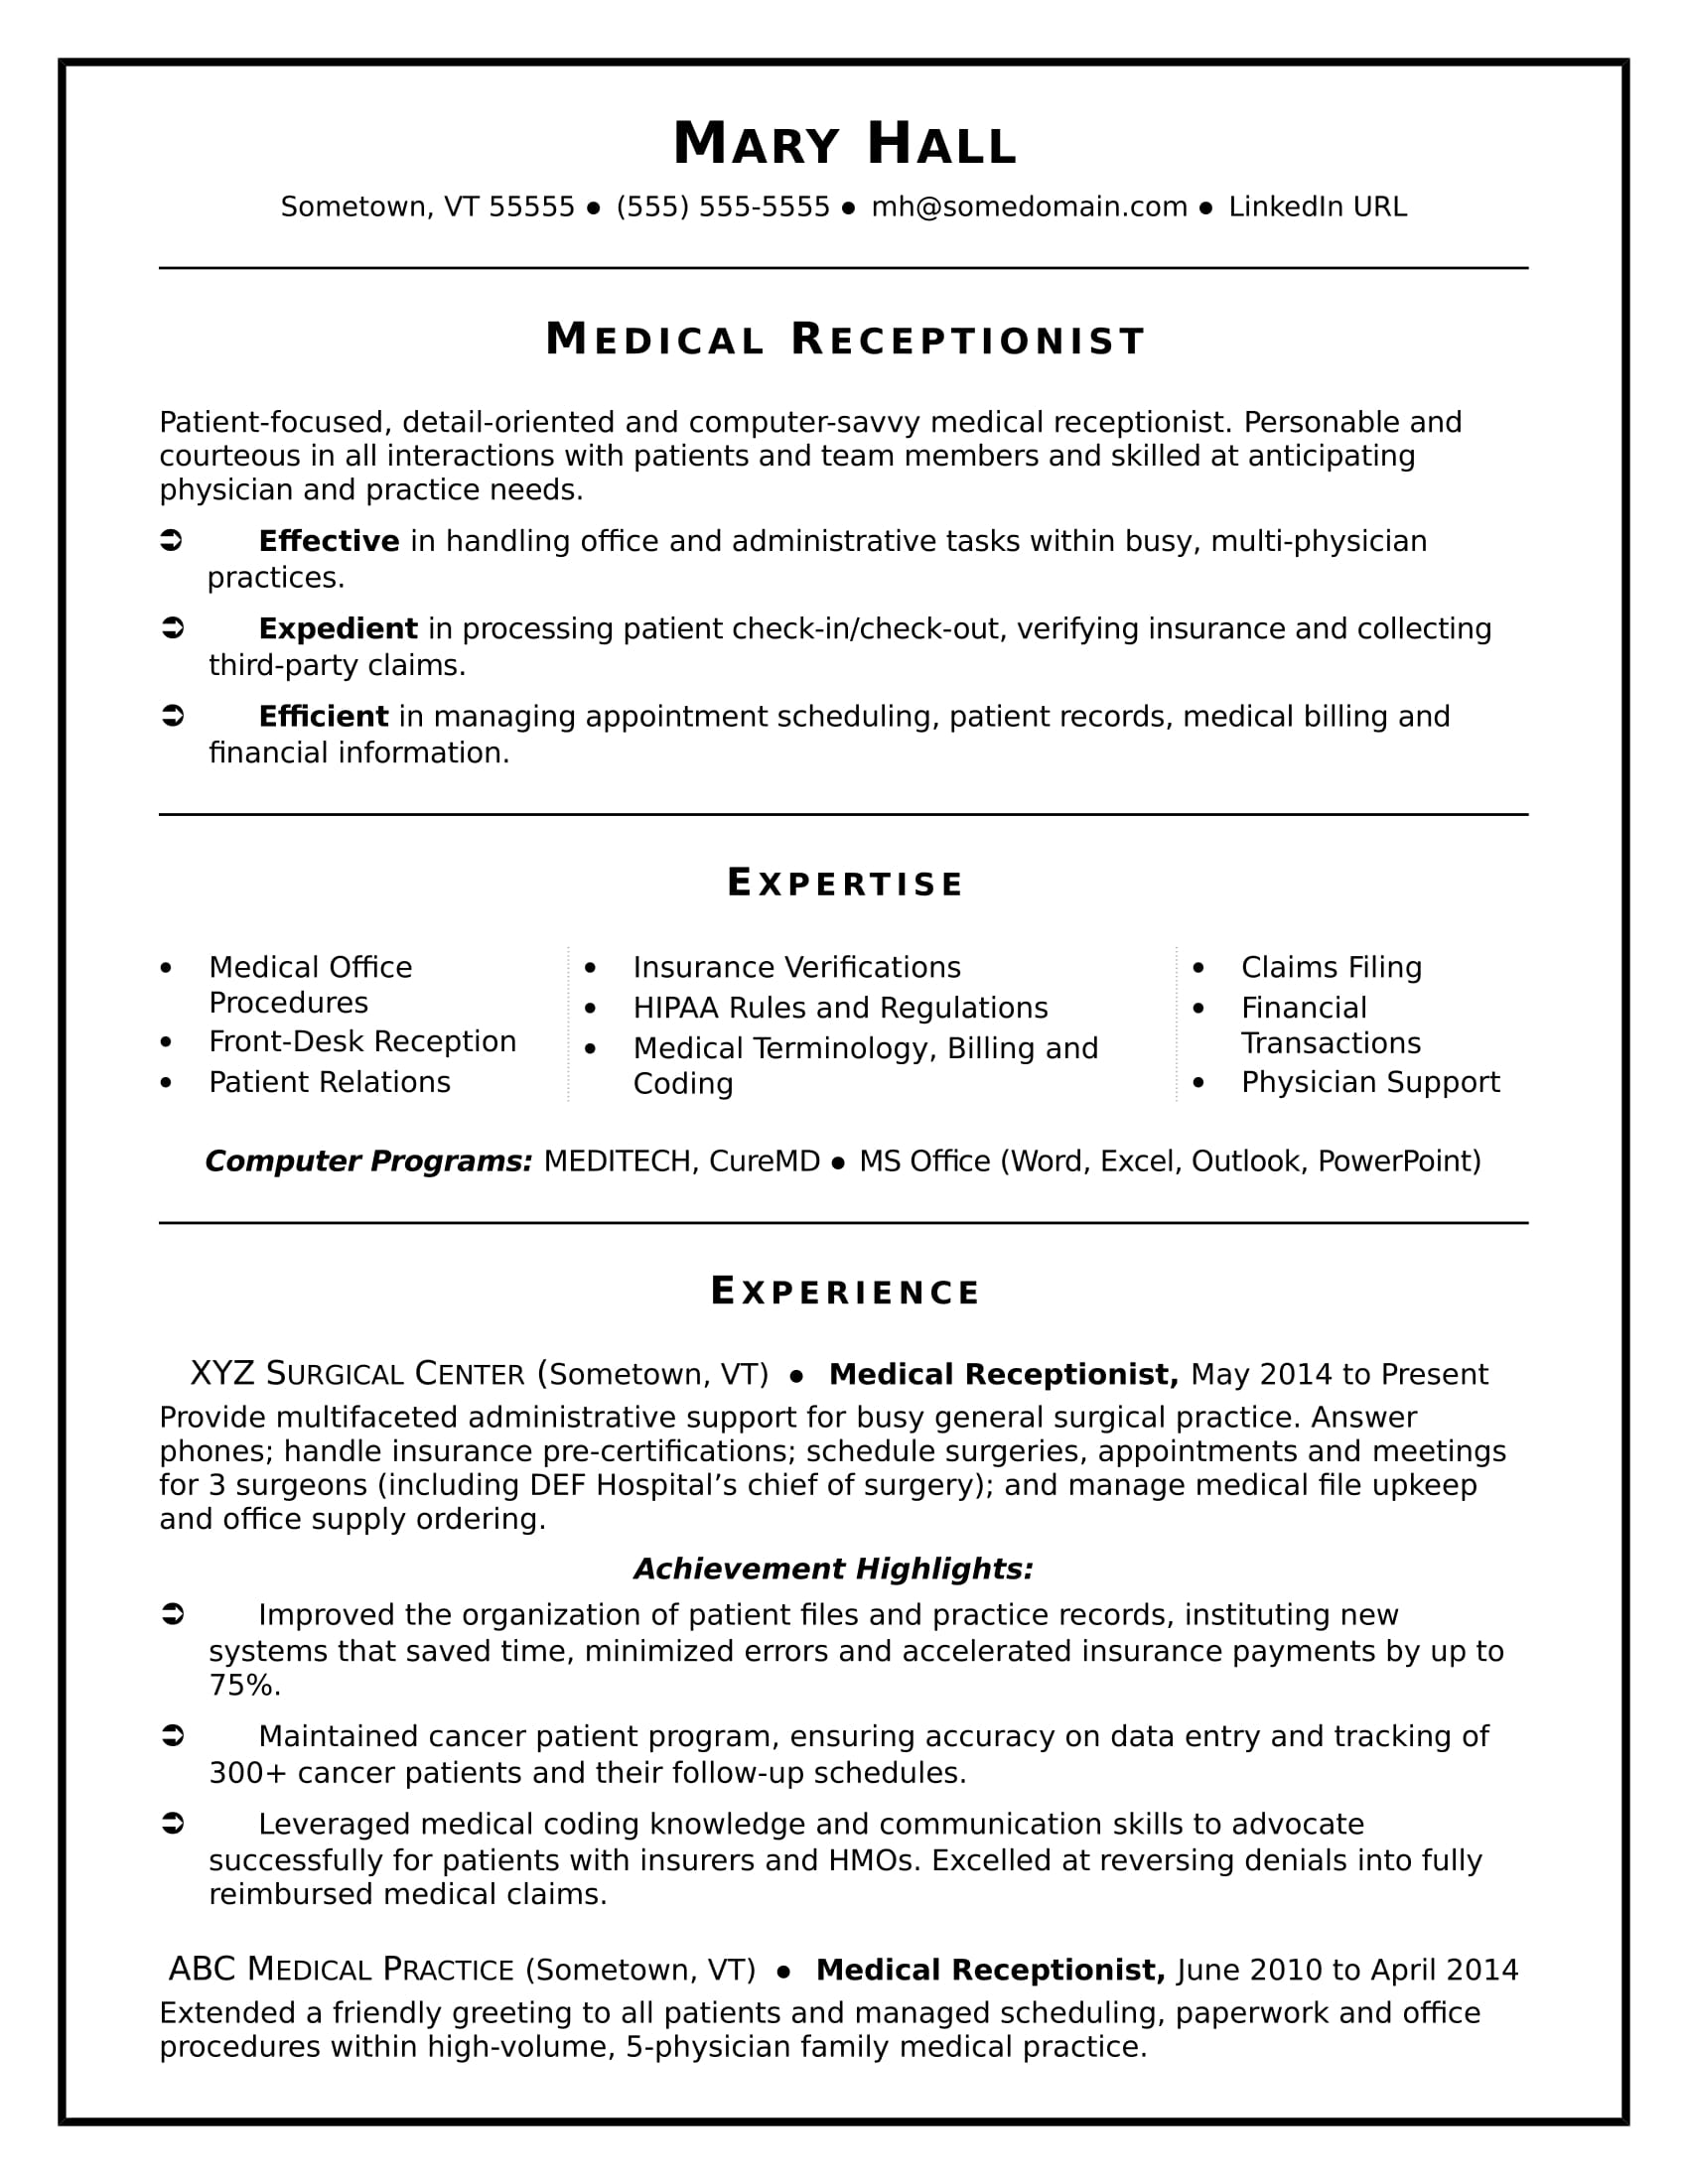 Receptionist Resume Template | Medical Receptionist Resume Sample Monster Com